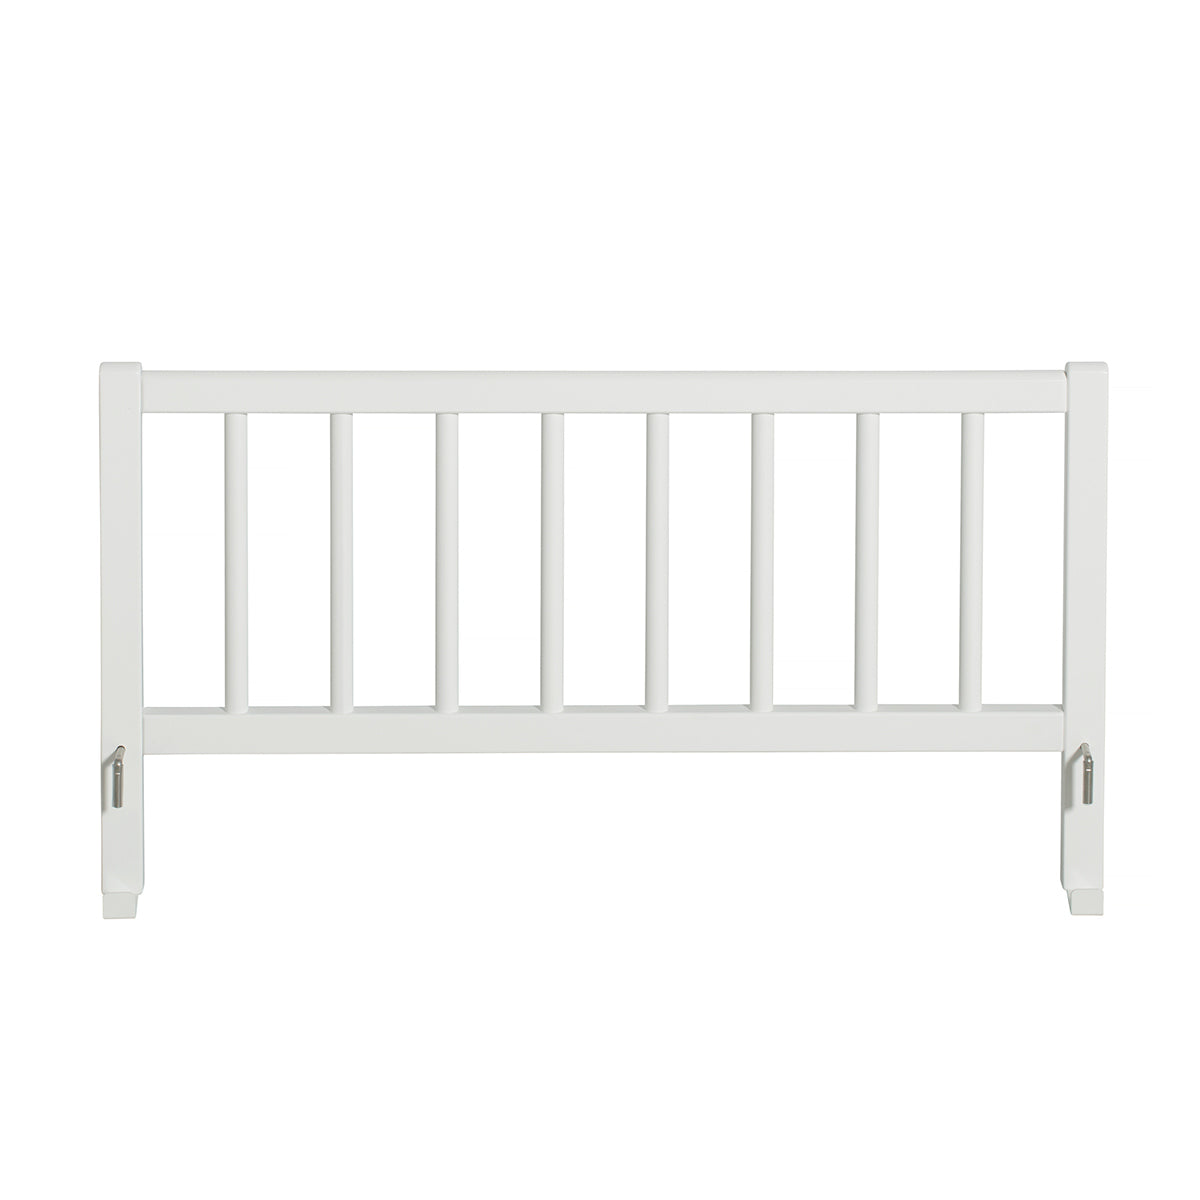 Oliver Furniture Wood Collection Juniorbett, 90 x 160cm, weiss/Eiche